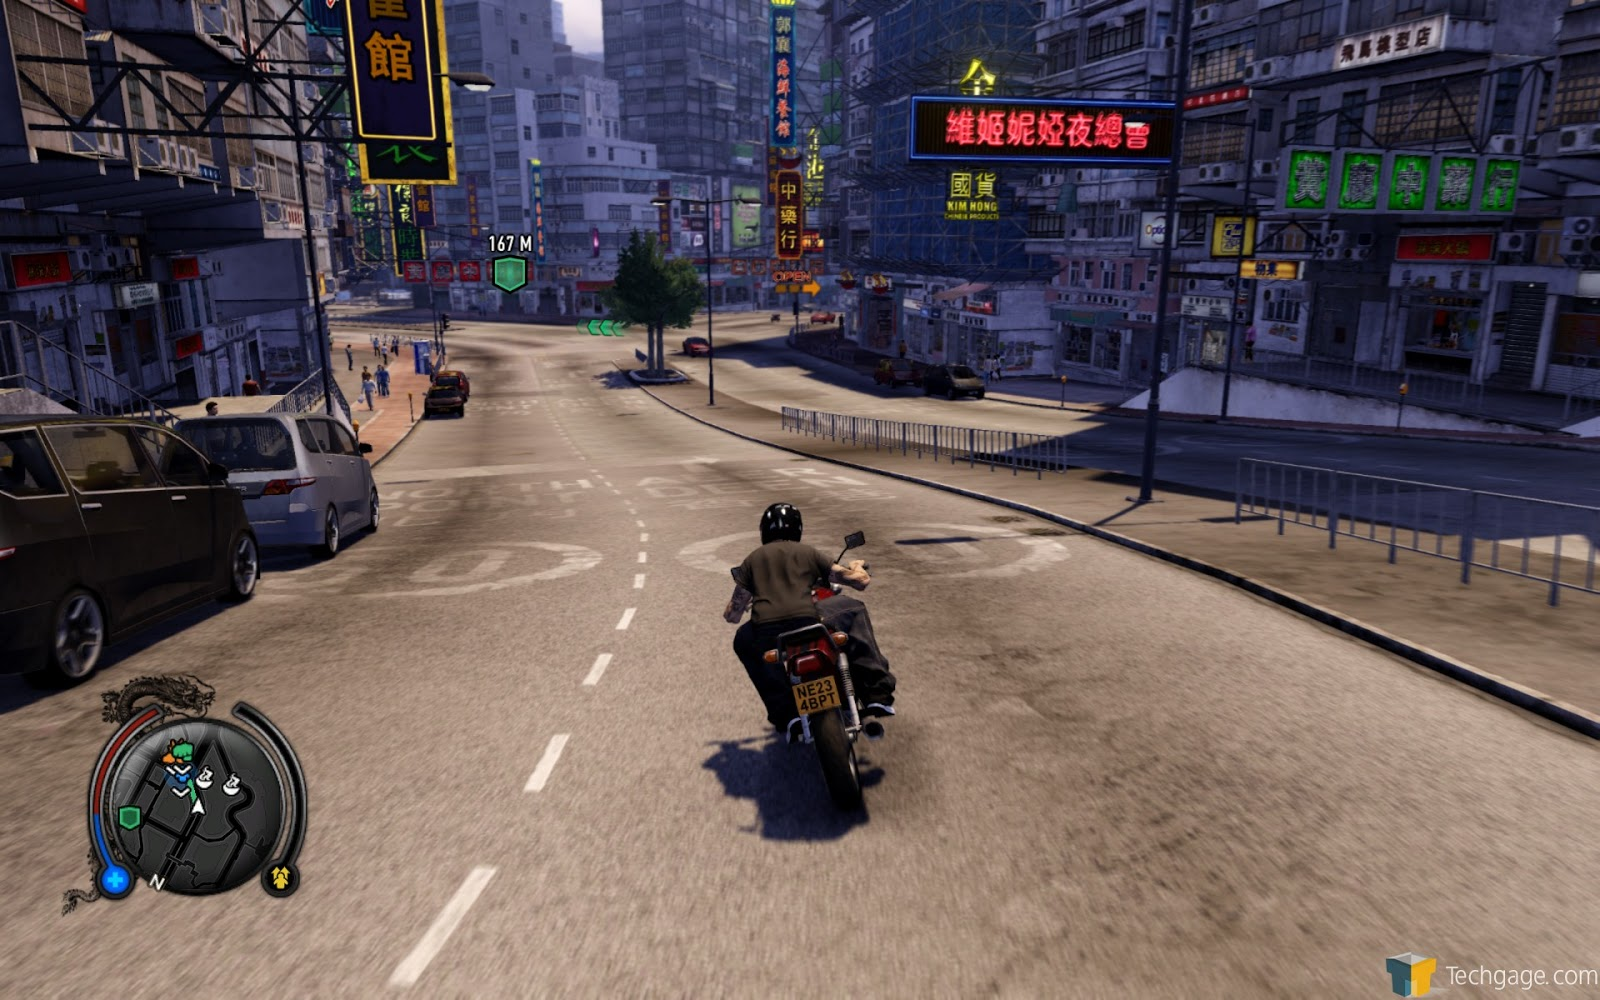 download torrent file sleeping dogs ps3 game download sleeping dogs